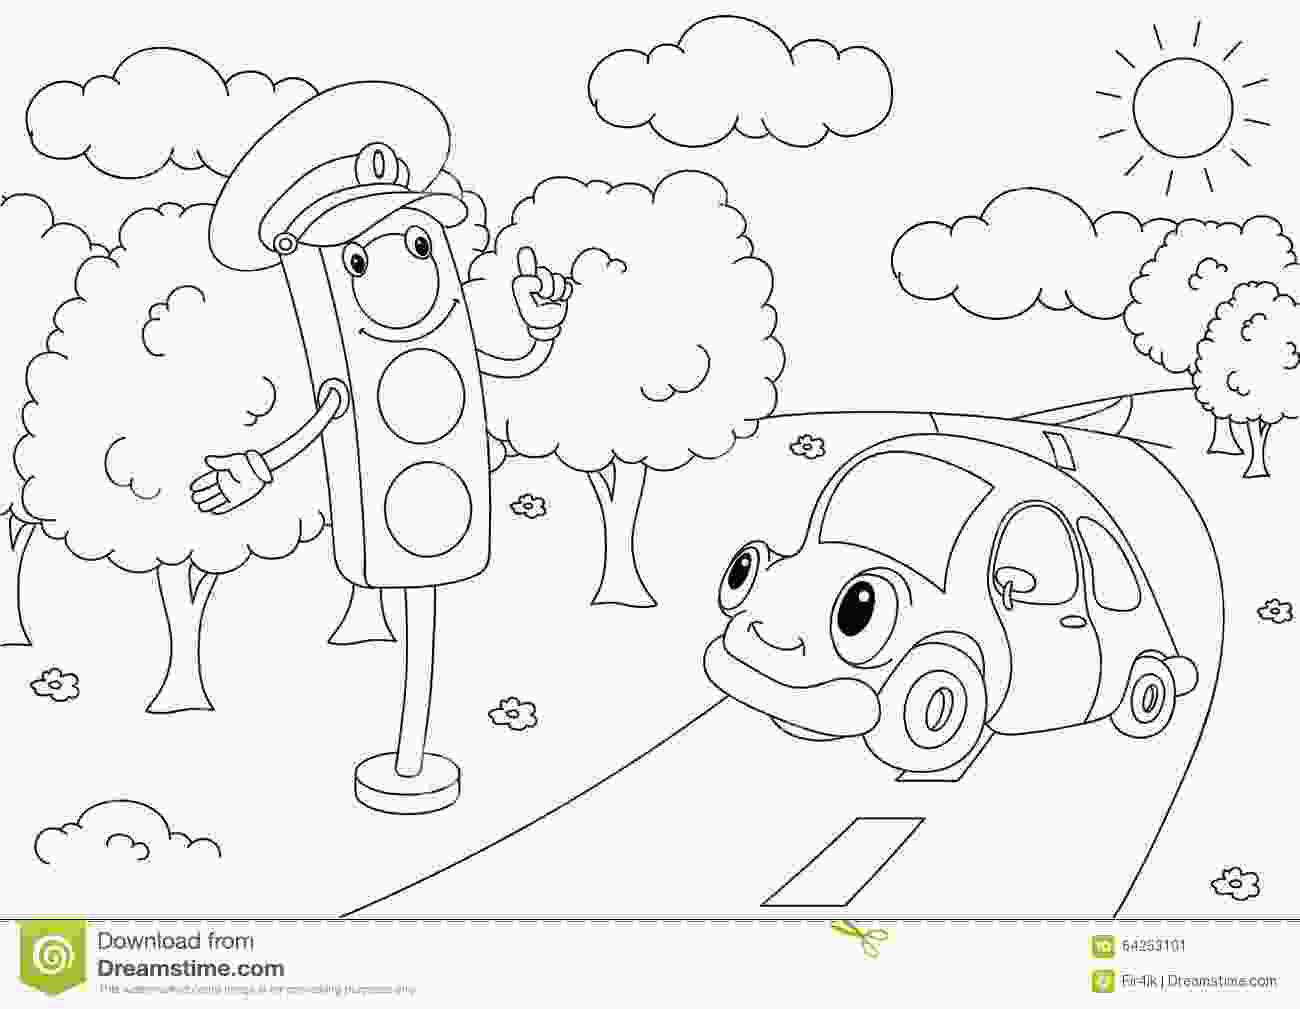 traffic light coloring page cartoon car with traffic lights stock vector